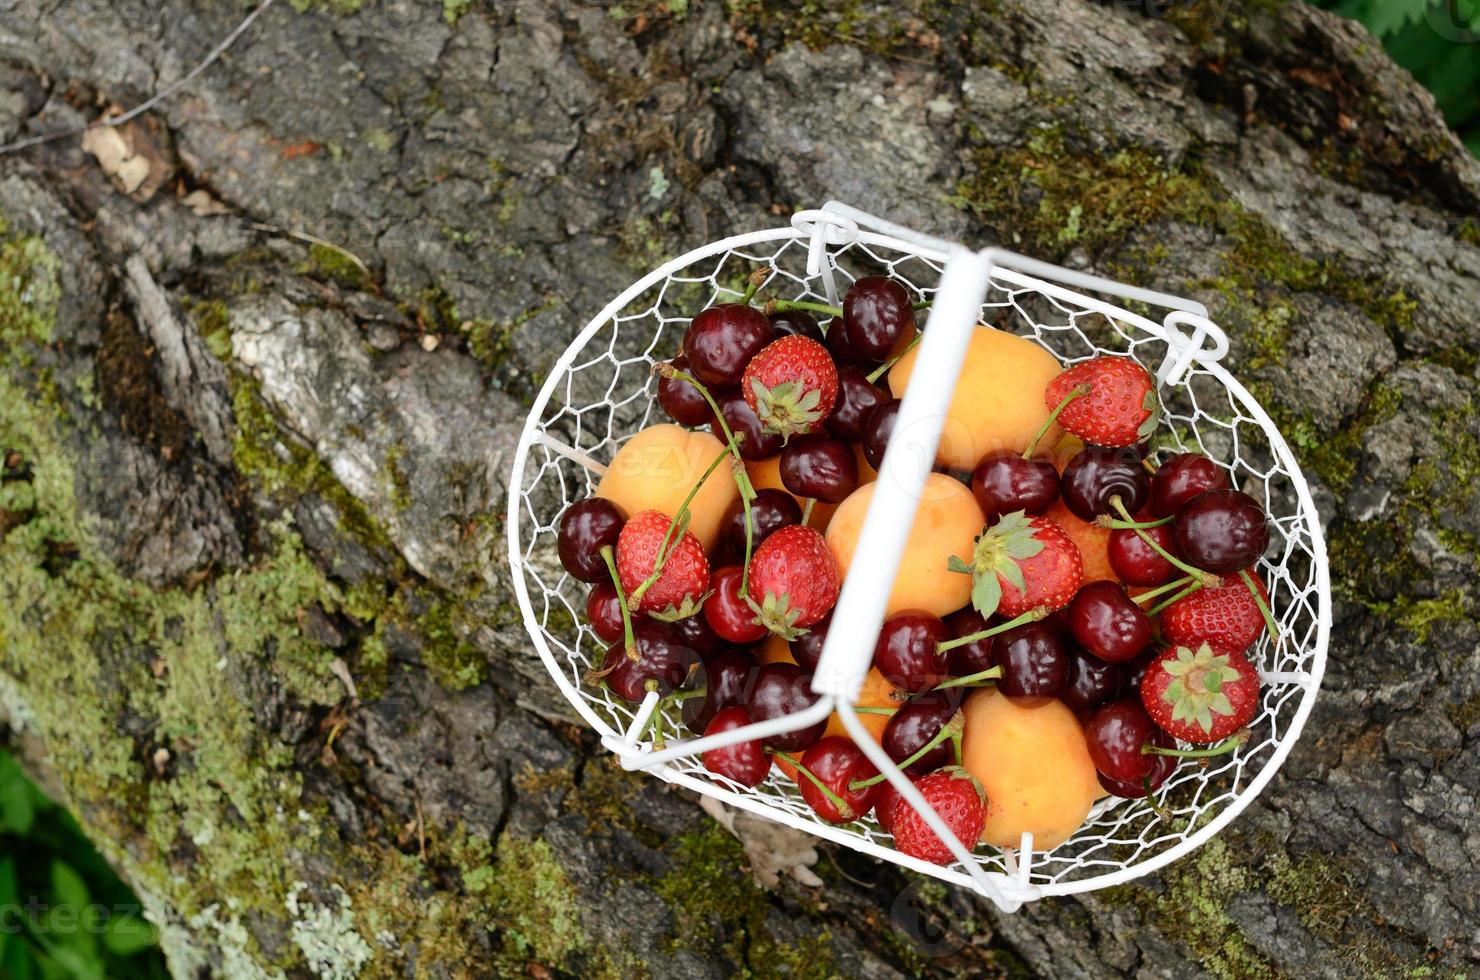 Picnic with mixed berries and fruits photo